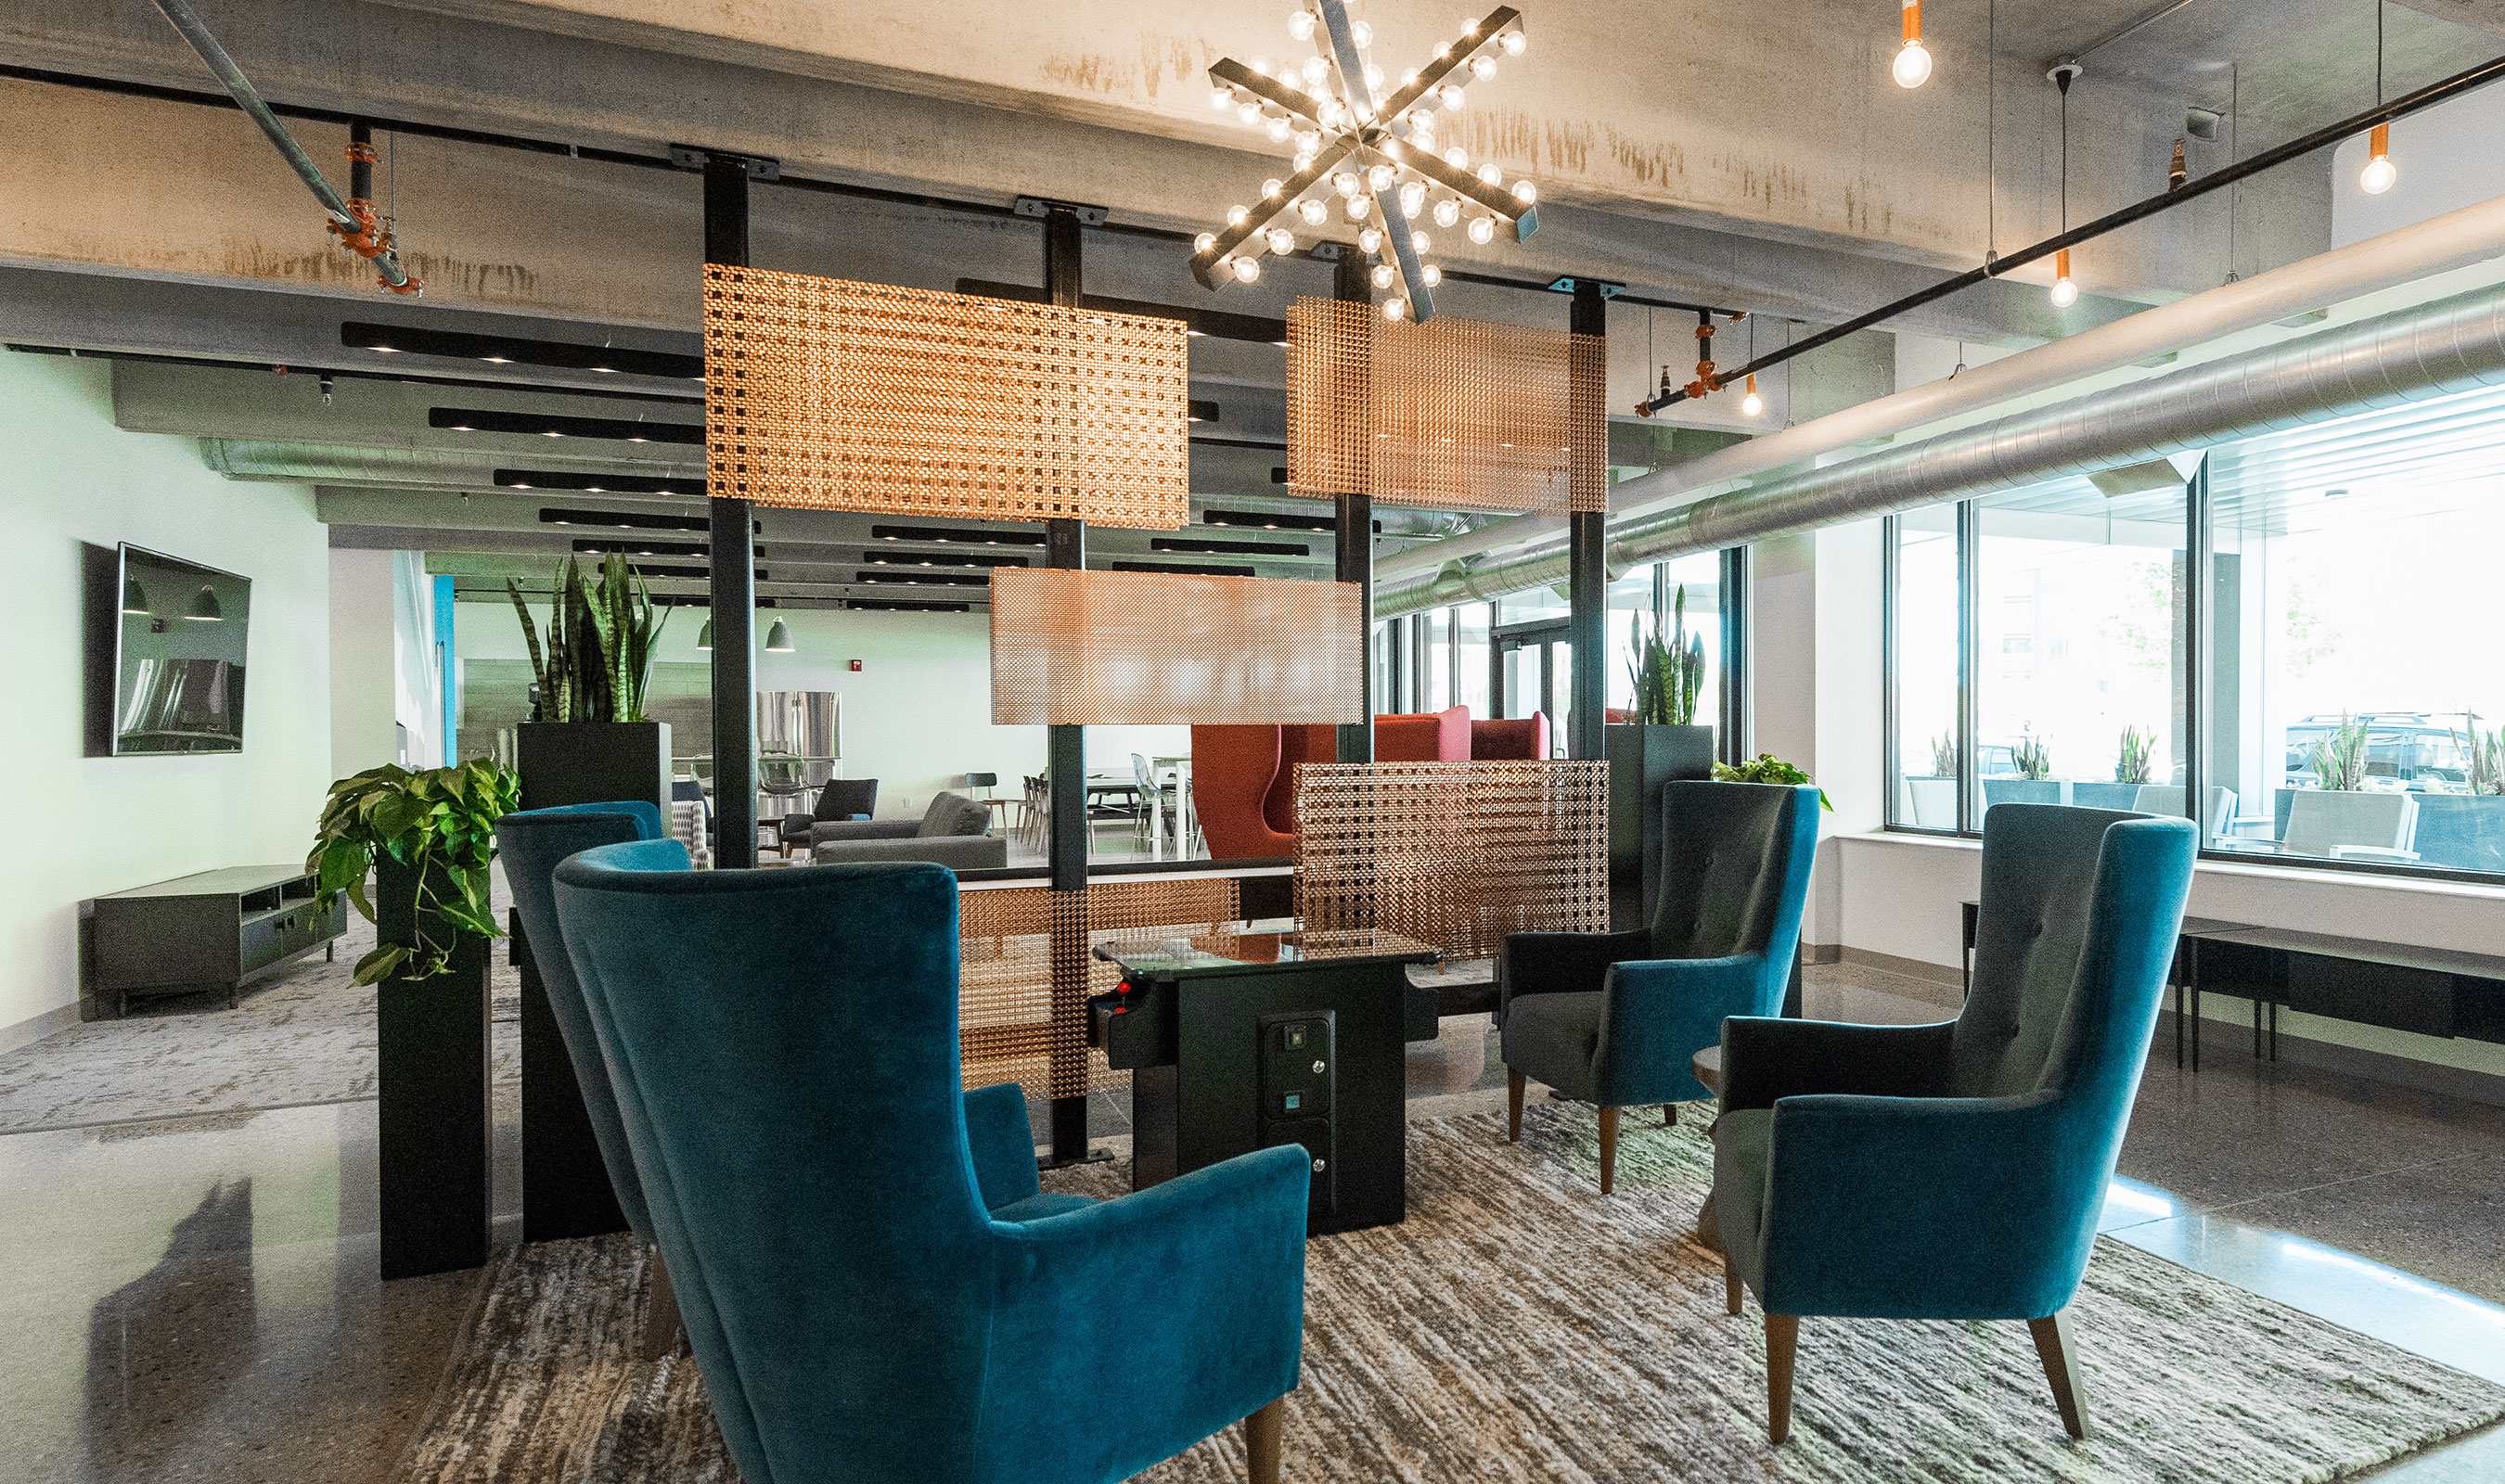 Brothers Interiors selected Banker Wire decorative mesh to use as an artistic interior space divider